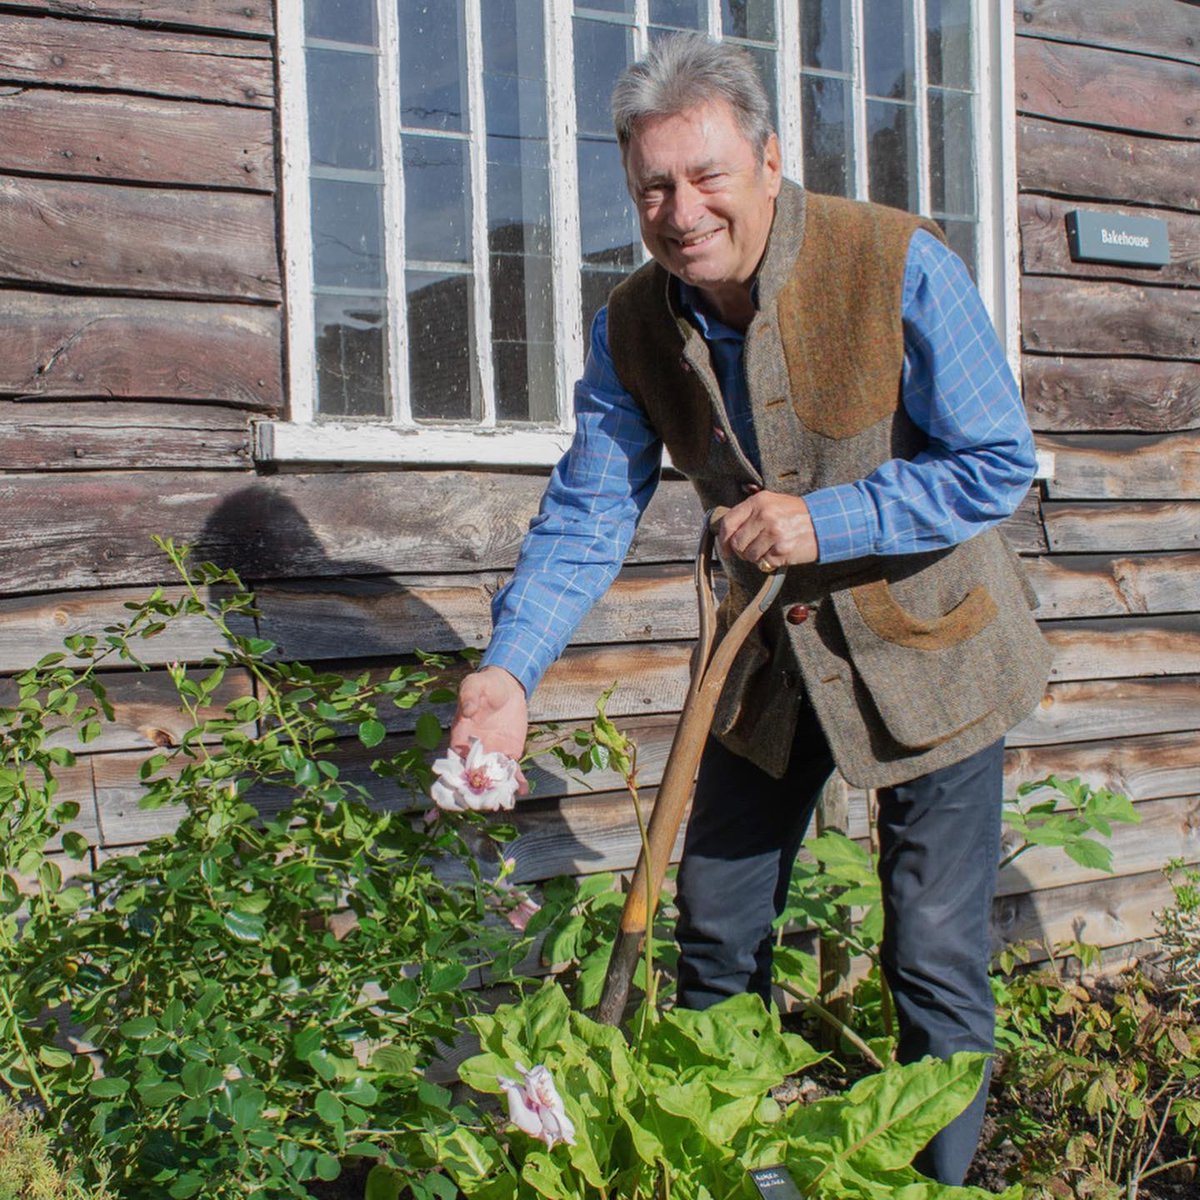 Alan Titchmarsh planted the Chawton Cottage rose in our garden this morning; a rose developed by Harkness Roses for our 70th anniversary. Huge thanks to Alan and all who joined us for this special moment. More: bit.ly/321fjgQ